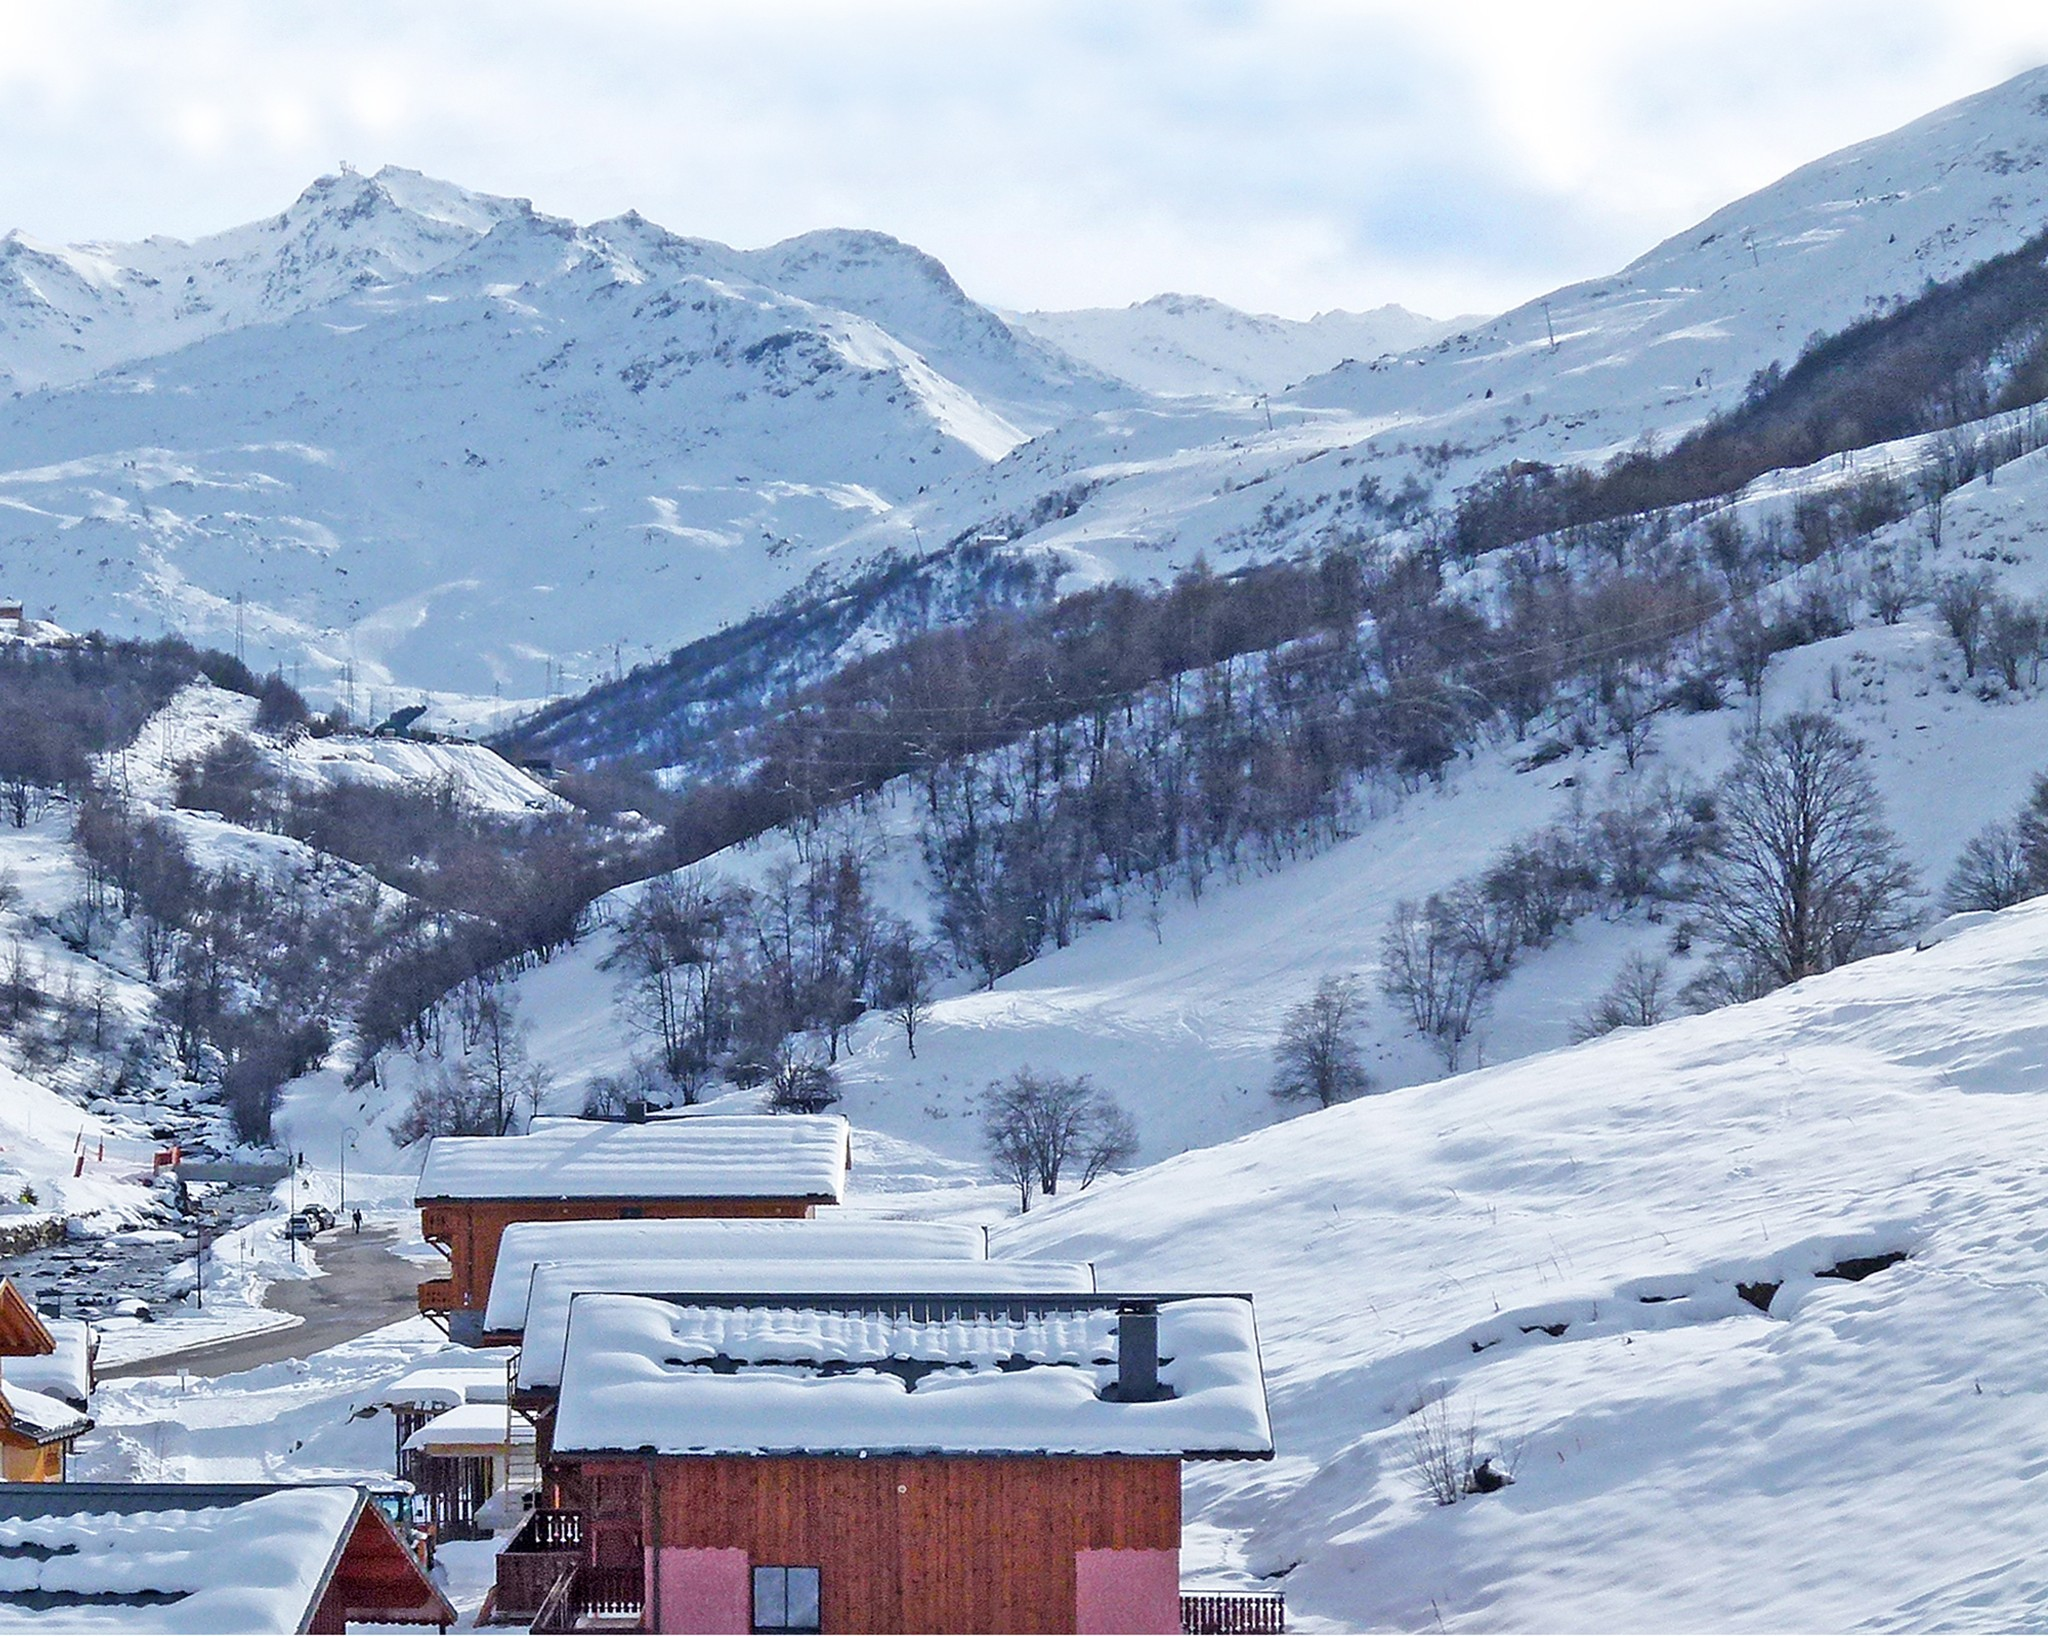 Chalet Ski Royal - panoramic view